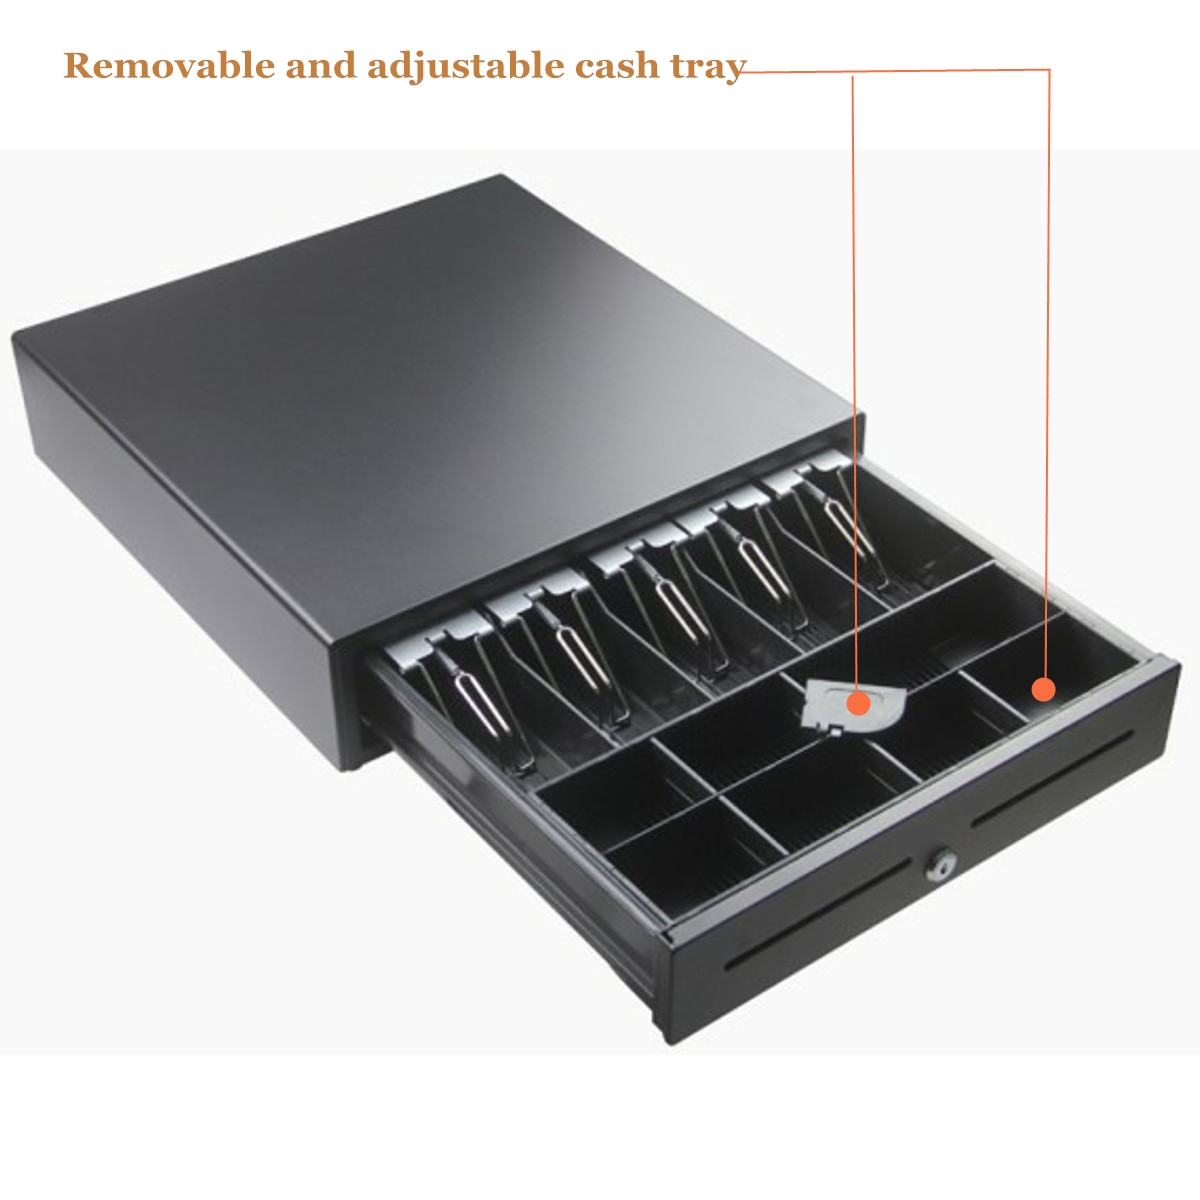 5 Bills & 8 Coins Manual Cash Box Drawer Register Money Coin Collecting Insert Storage Tray Kits